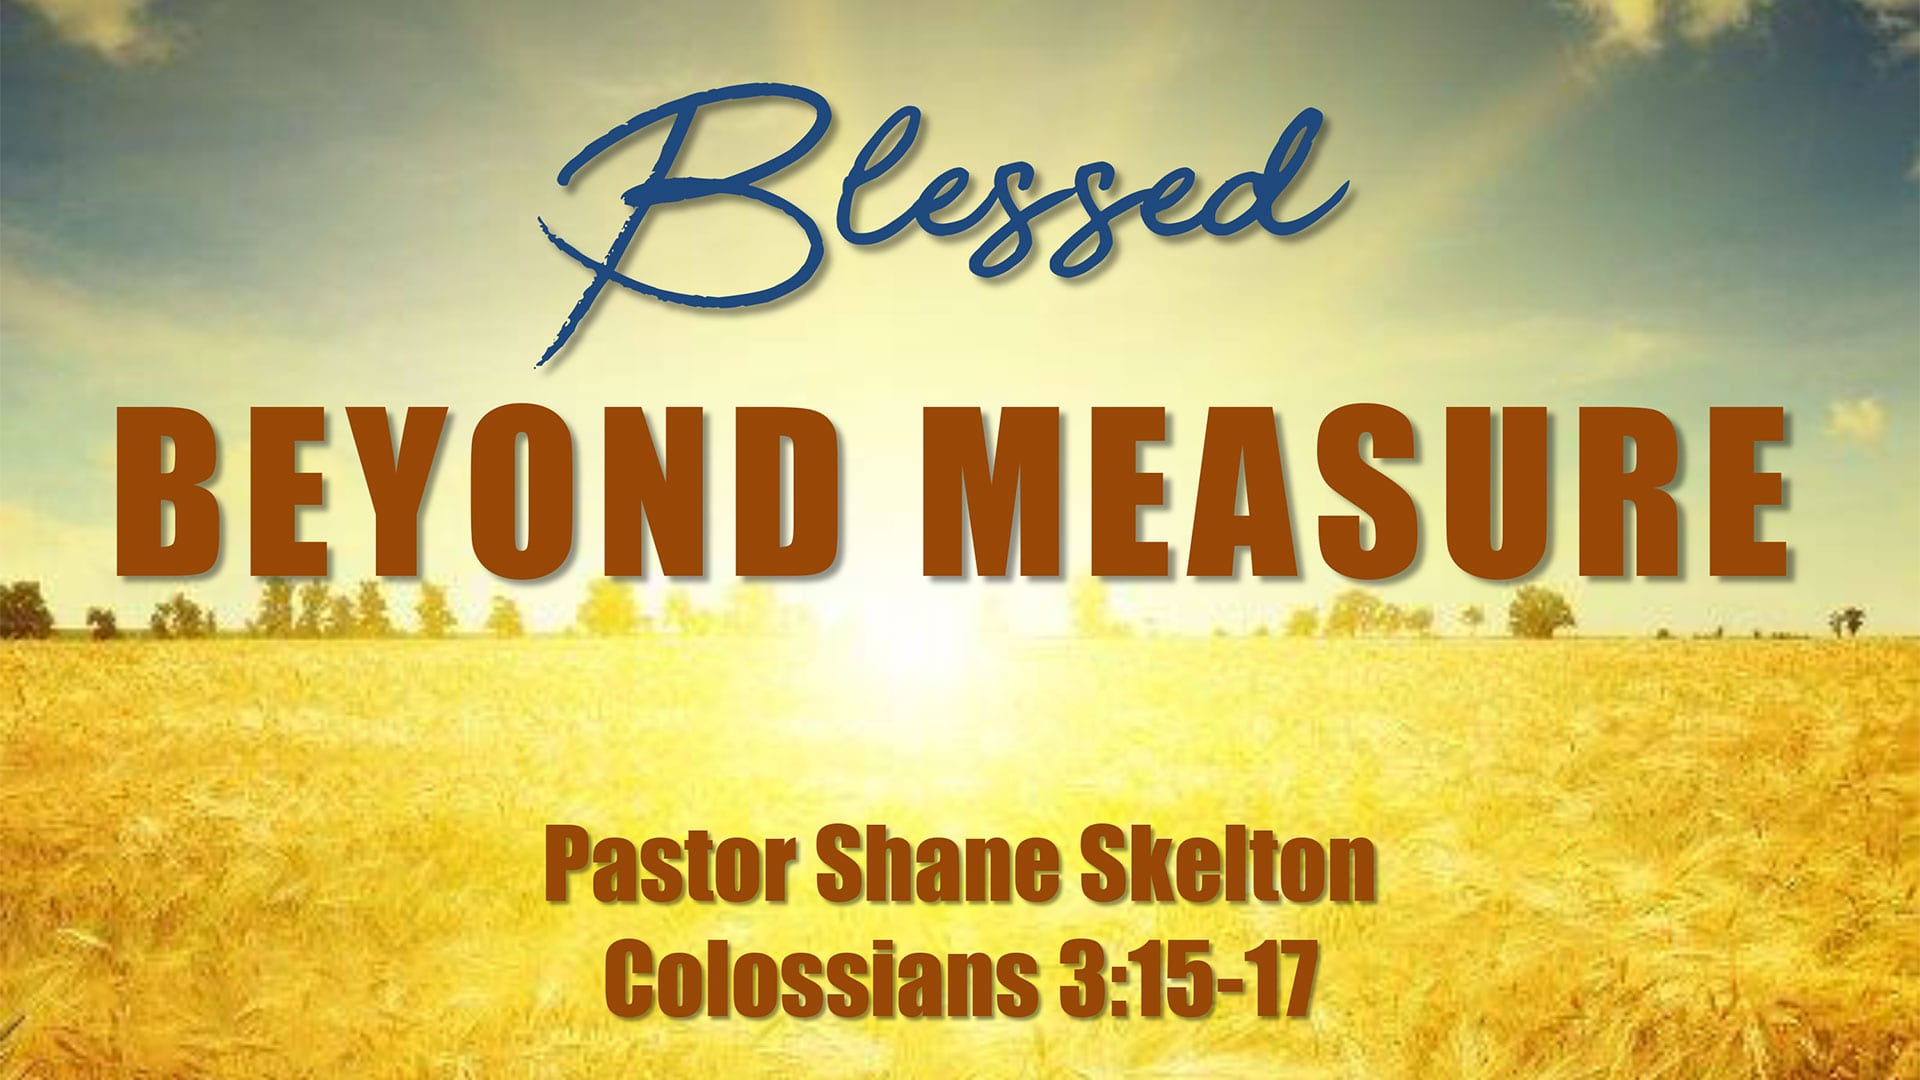 CBC_2020_11_15_AM_blessed_beyond_measure_Outline_Thumbnail_1920x1080